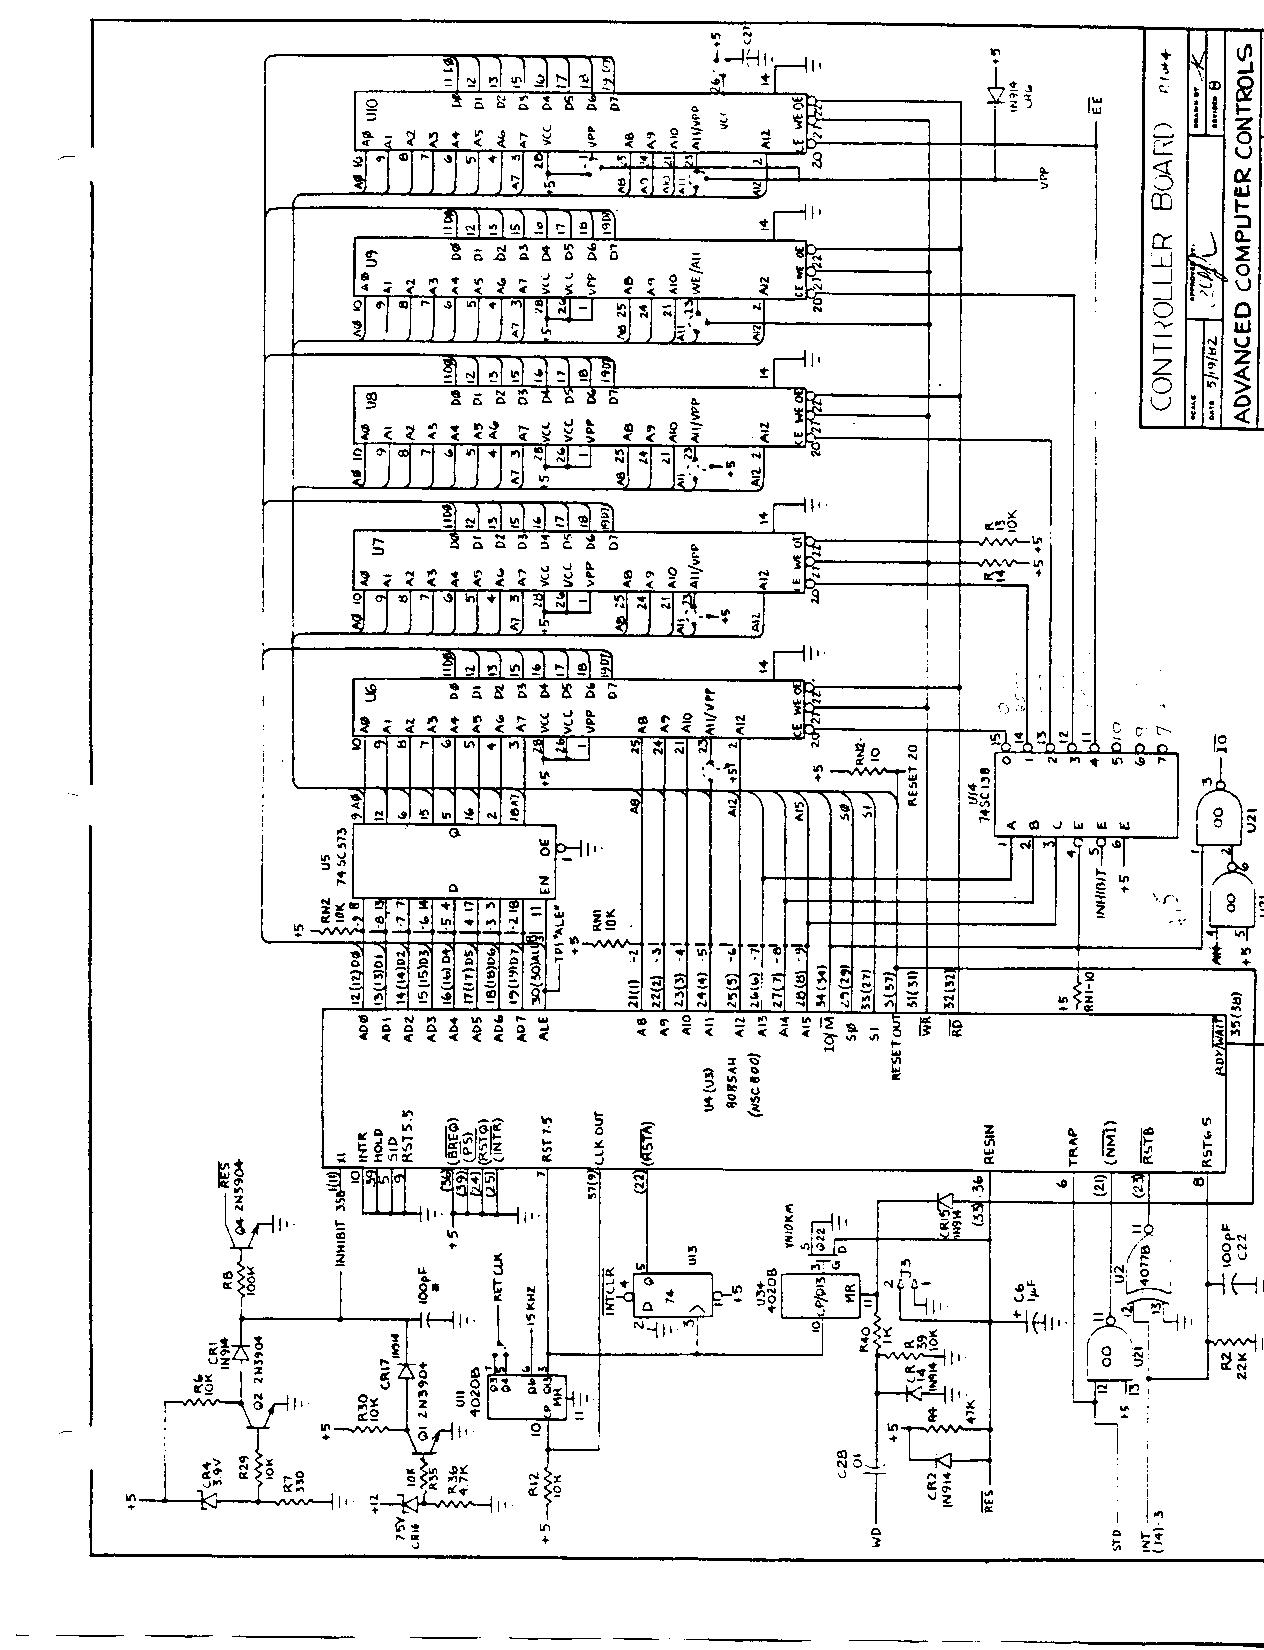 Dryerheat moreover Electrical Schematic Symbols Test in addition Dryer Motor Wiring Diagram as well 208192 Dryer Will Not Keep Running After I Let Go Starter Switch likewise Irrigation Pump Wiring Diagram. on ge electric motor centrifugal switch